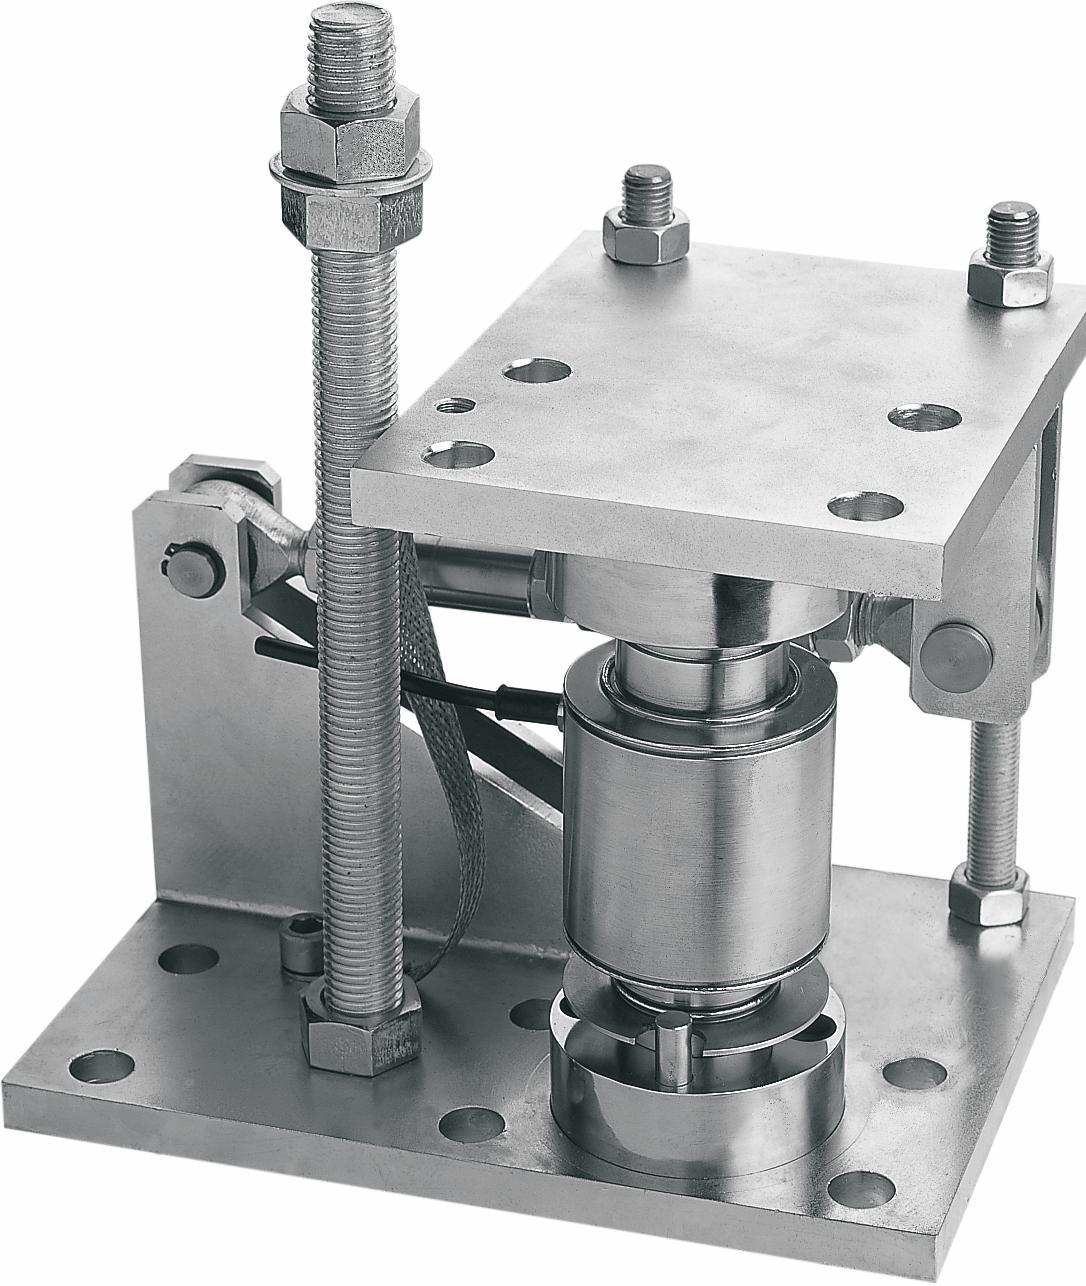 Mount for Load Cell (CP-4M)